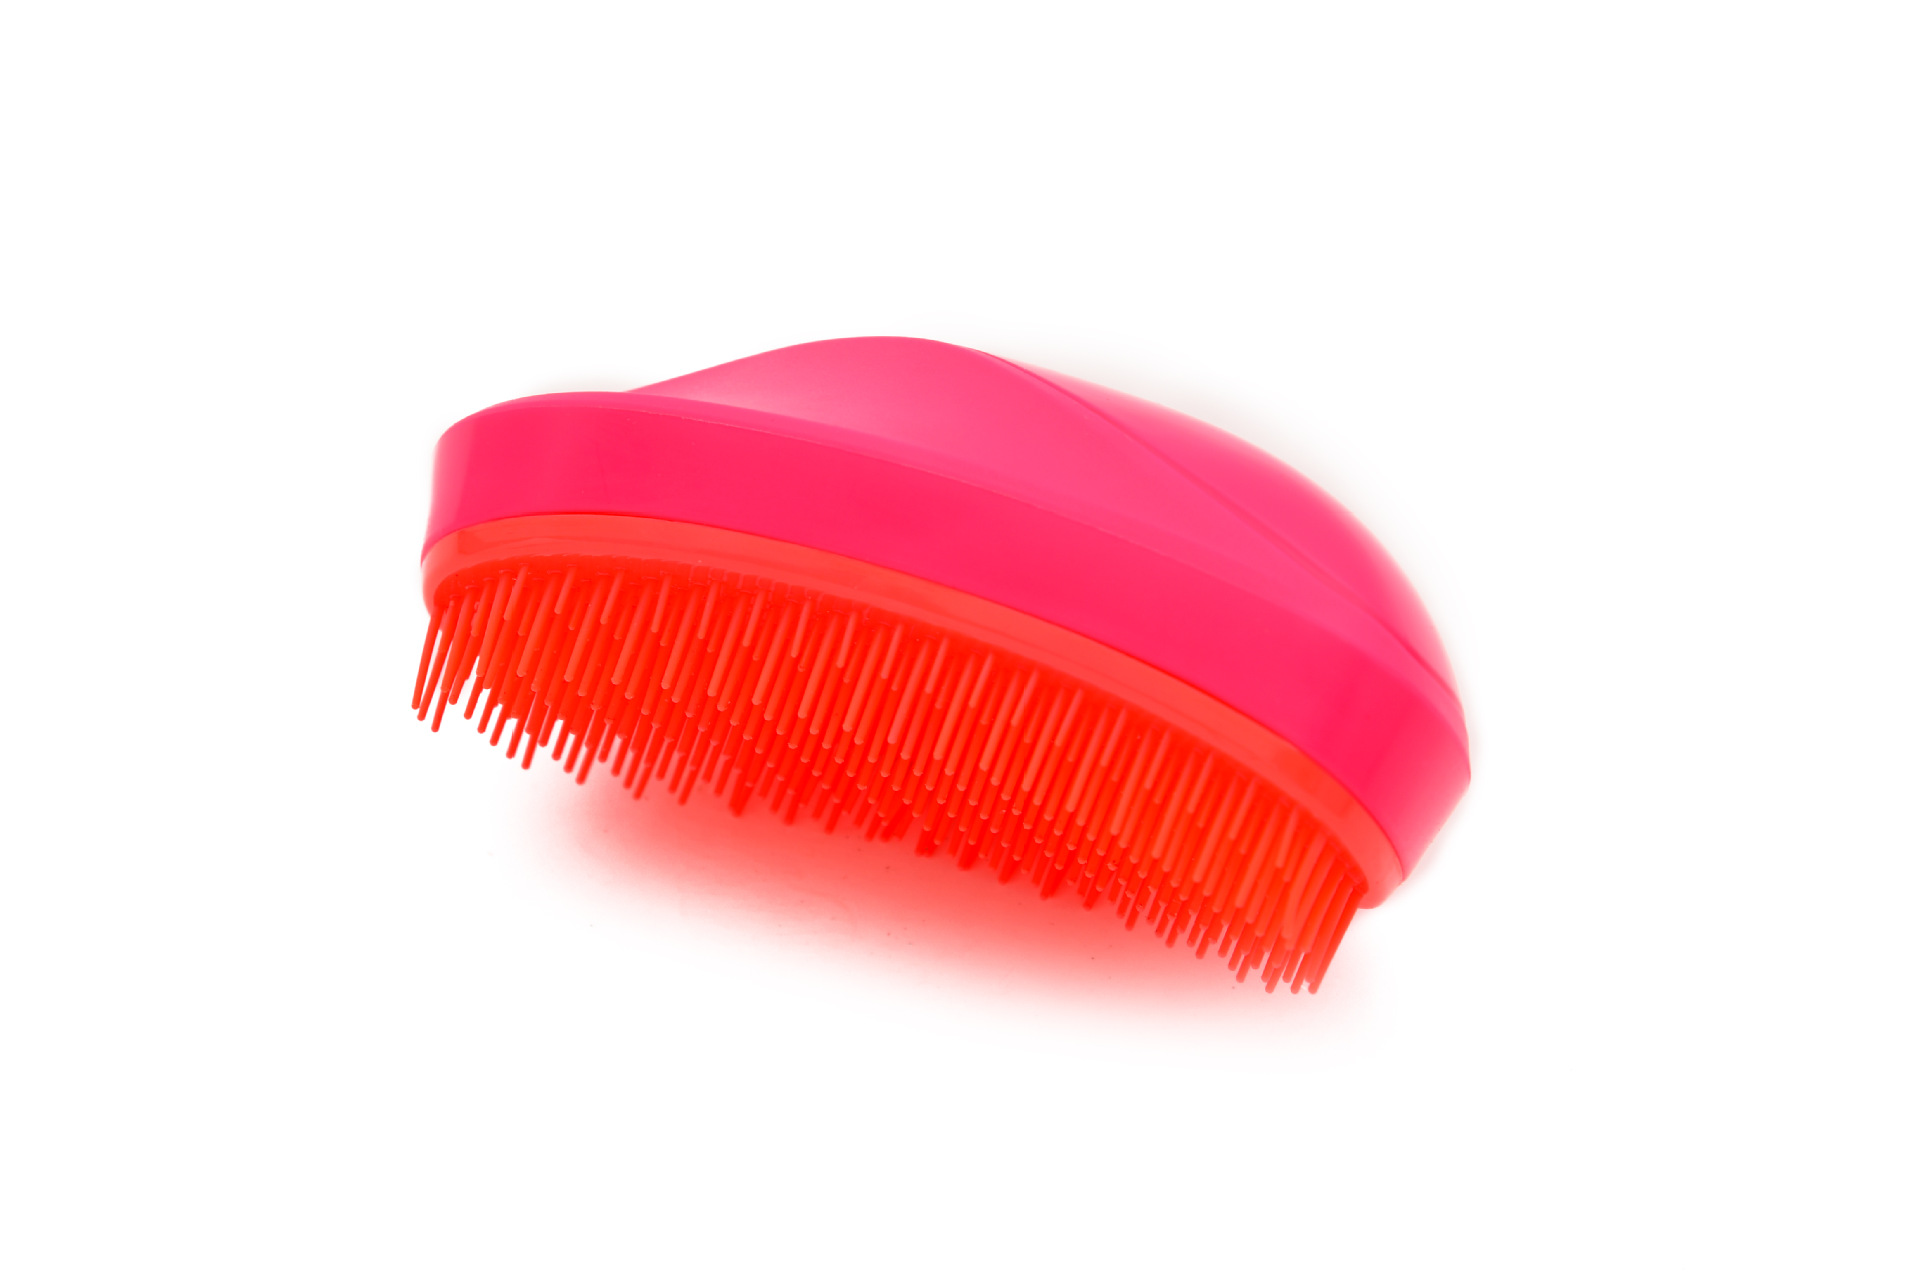 Mango-Shaped TT Tangle Teezer Hair Comb Massage Combs Plastic Comb Anti-Knot Hair Comb